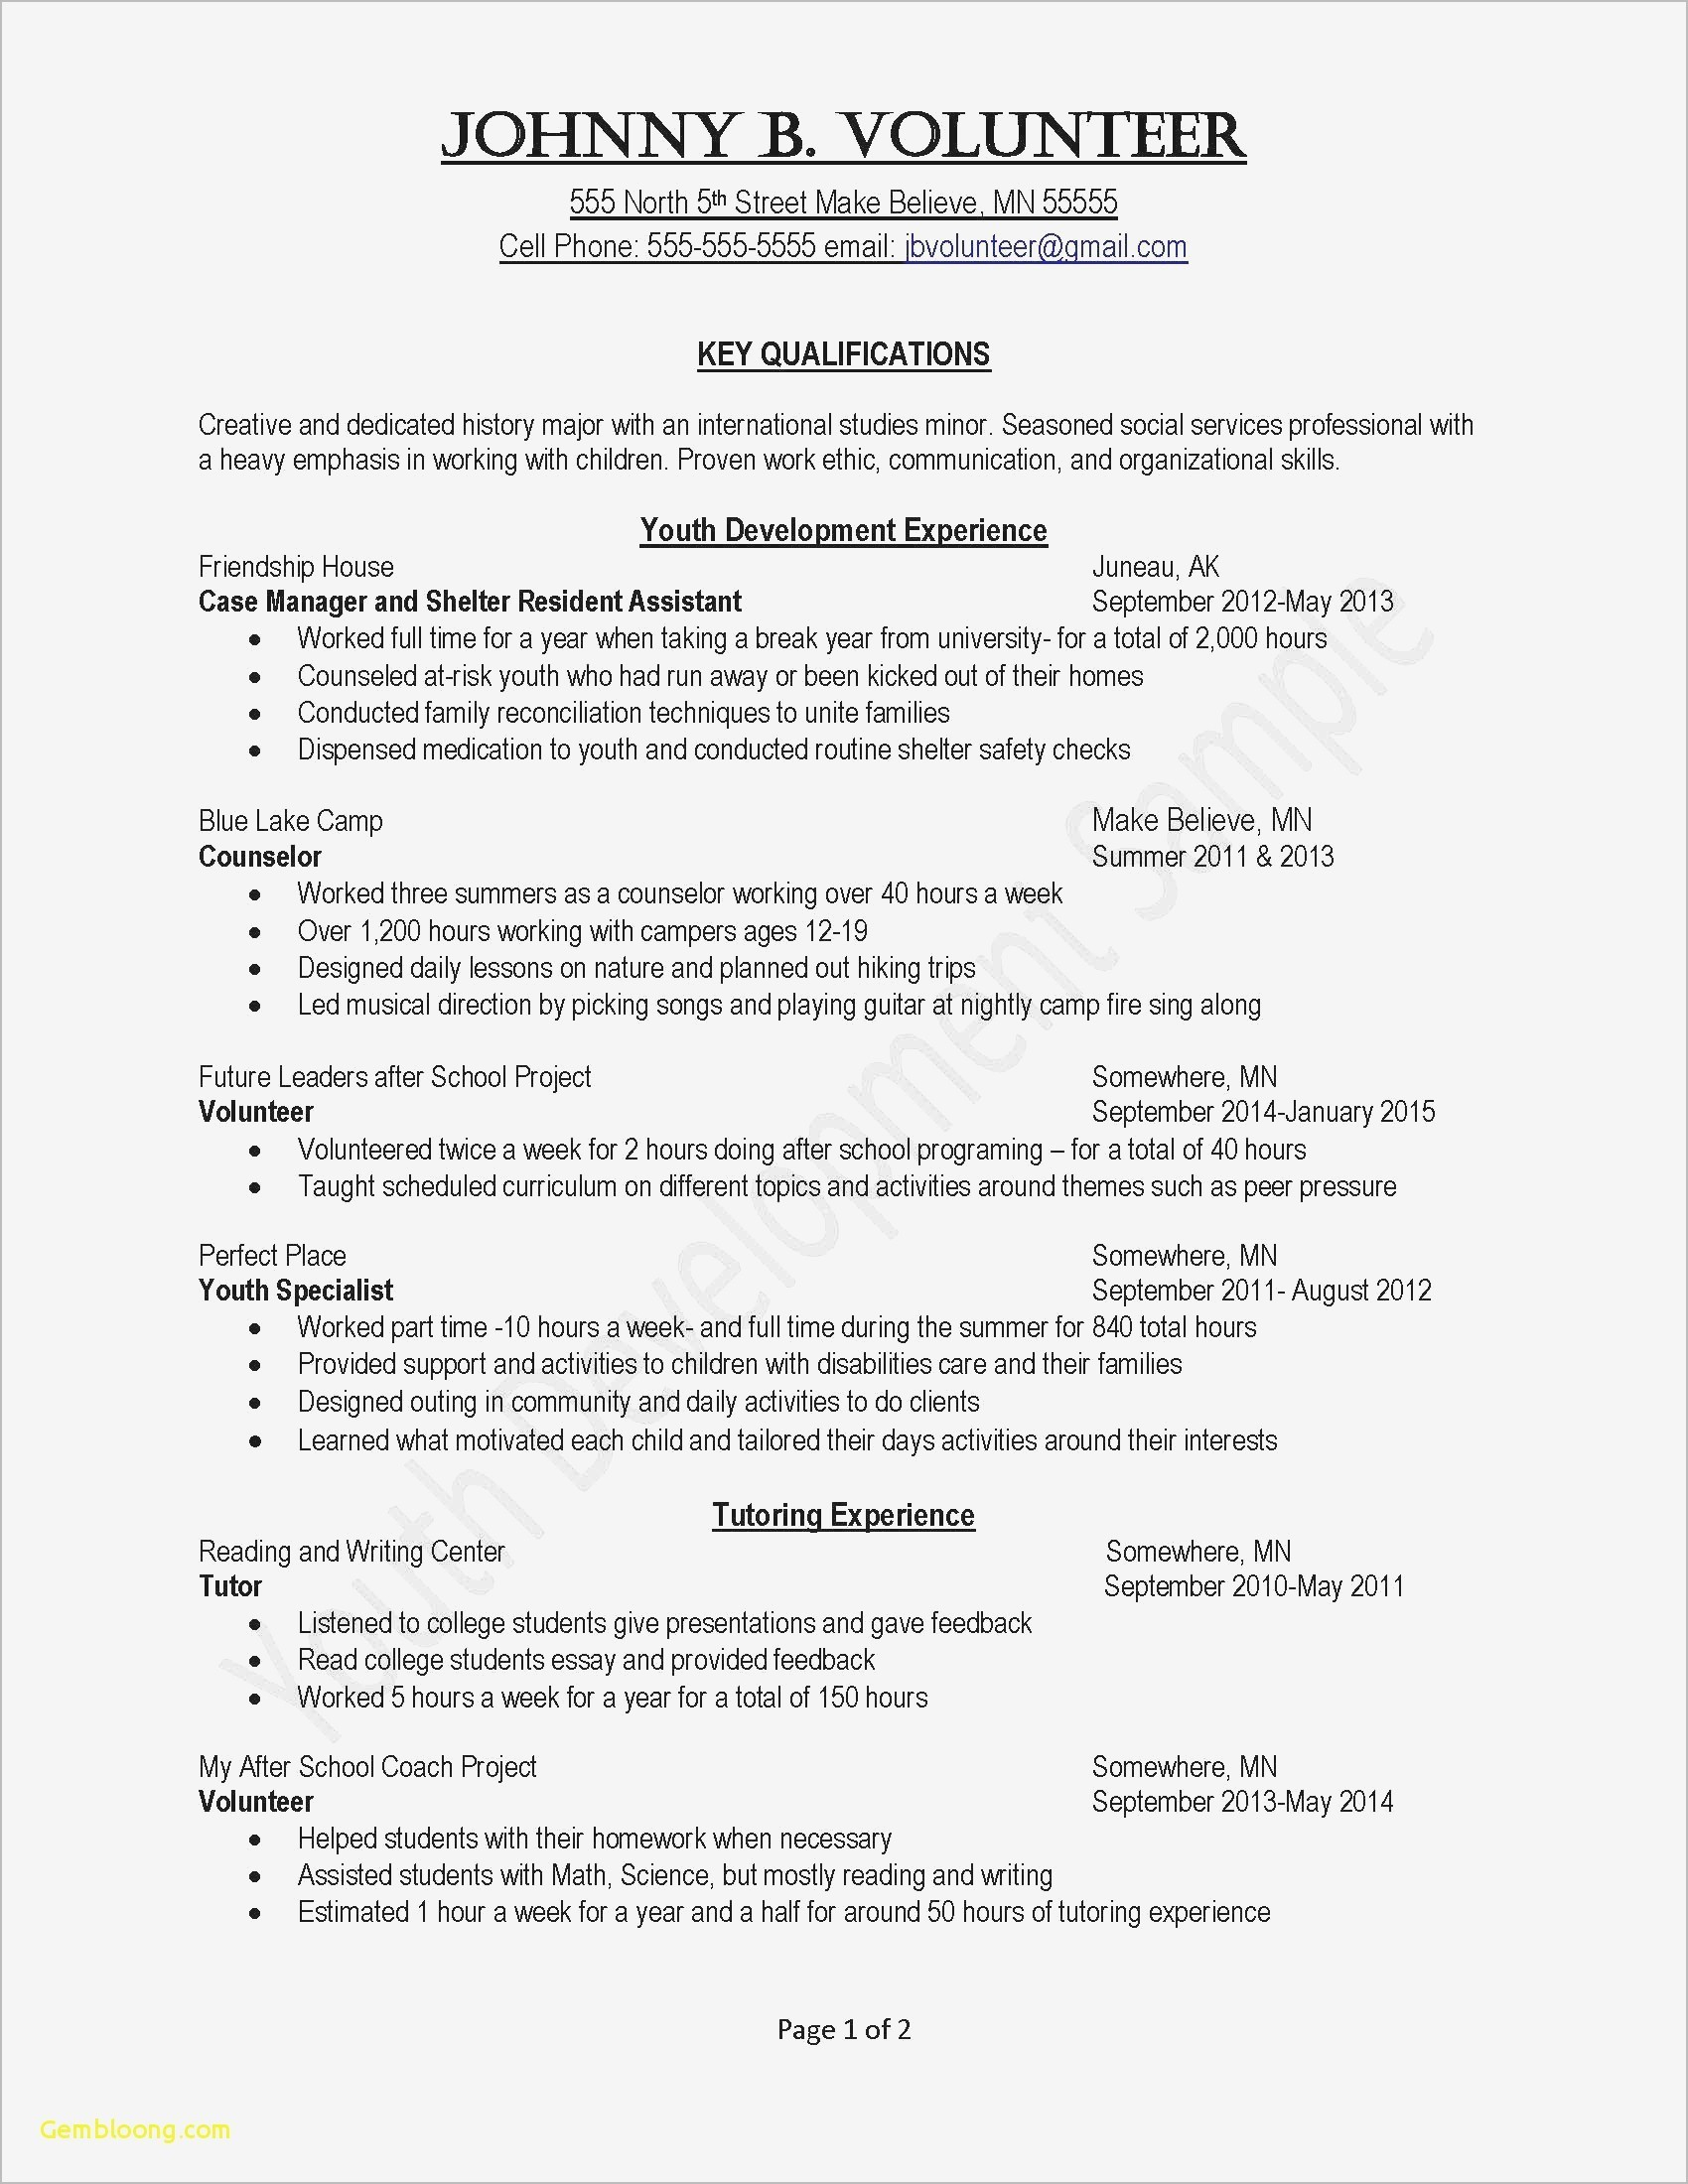 Pre Hire Letter Template - Fax Cover Sheet for Resume Inspirationa Fax Cover Letter Template